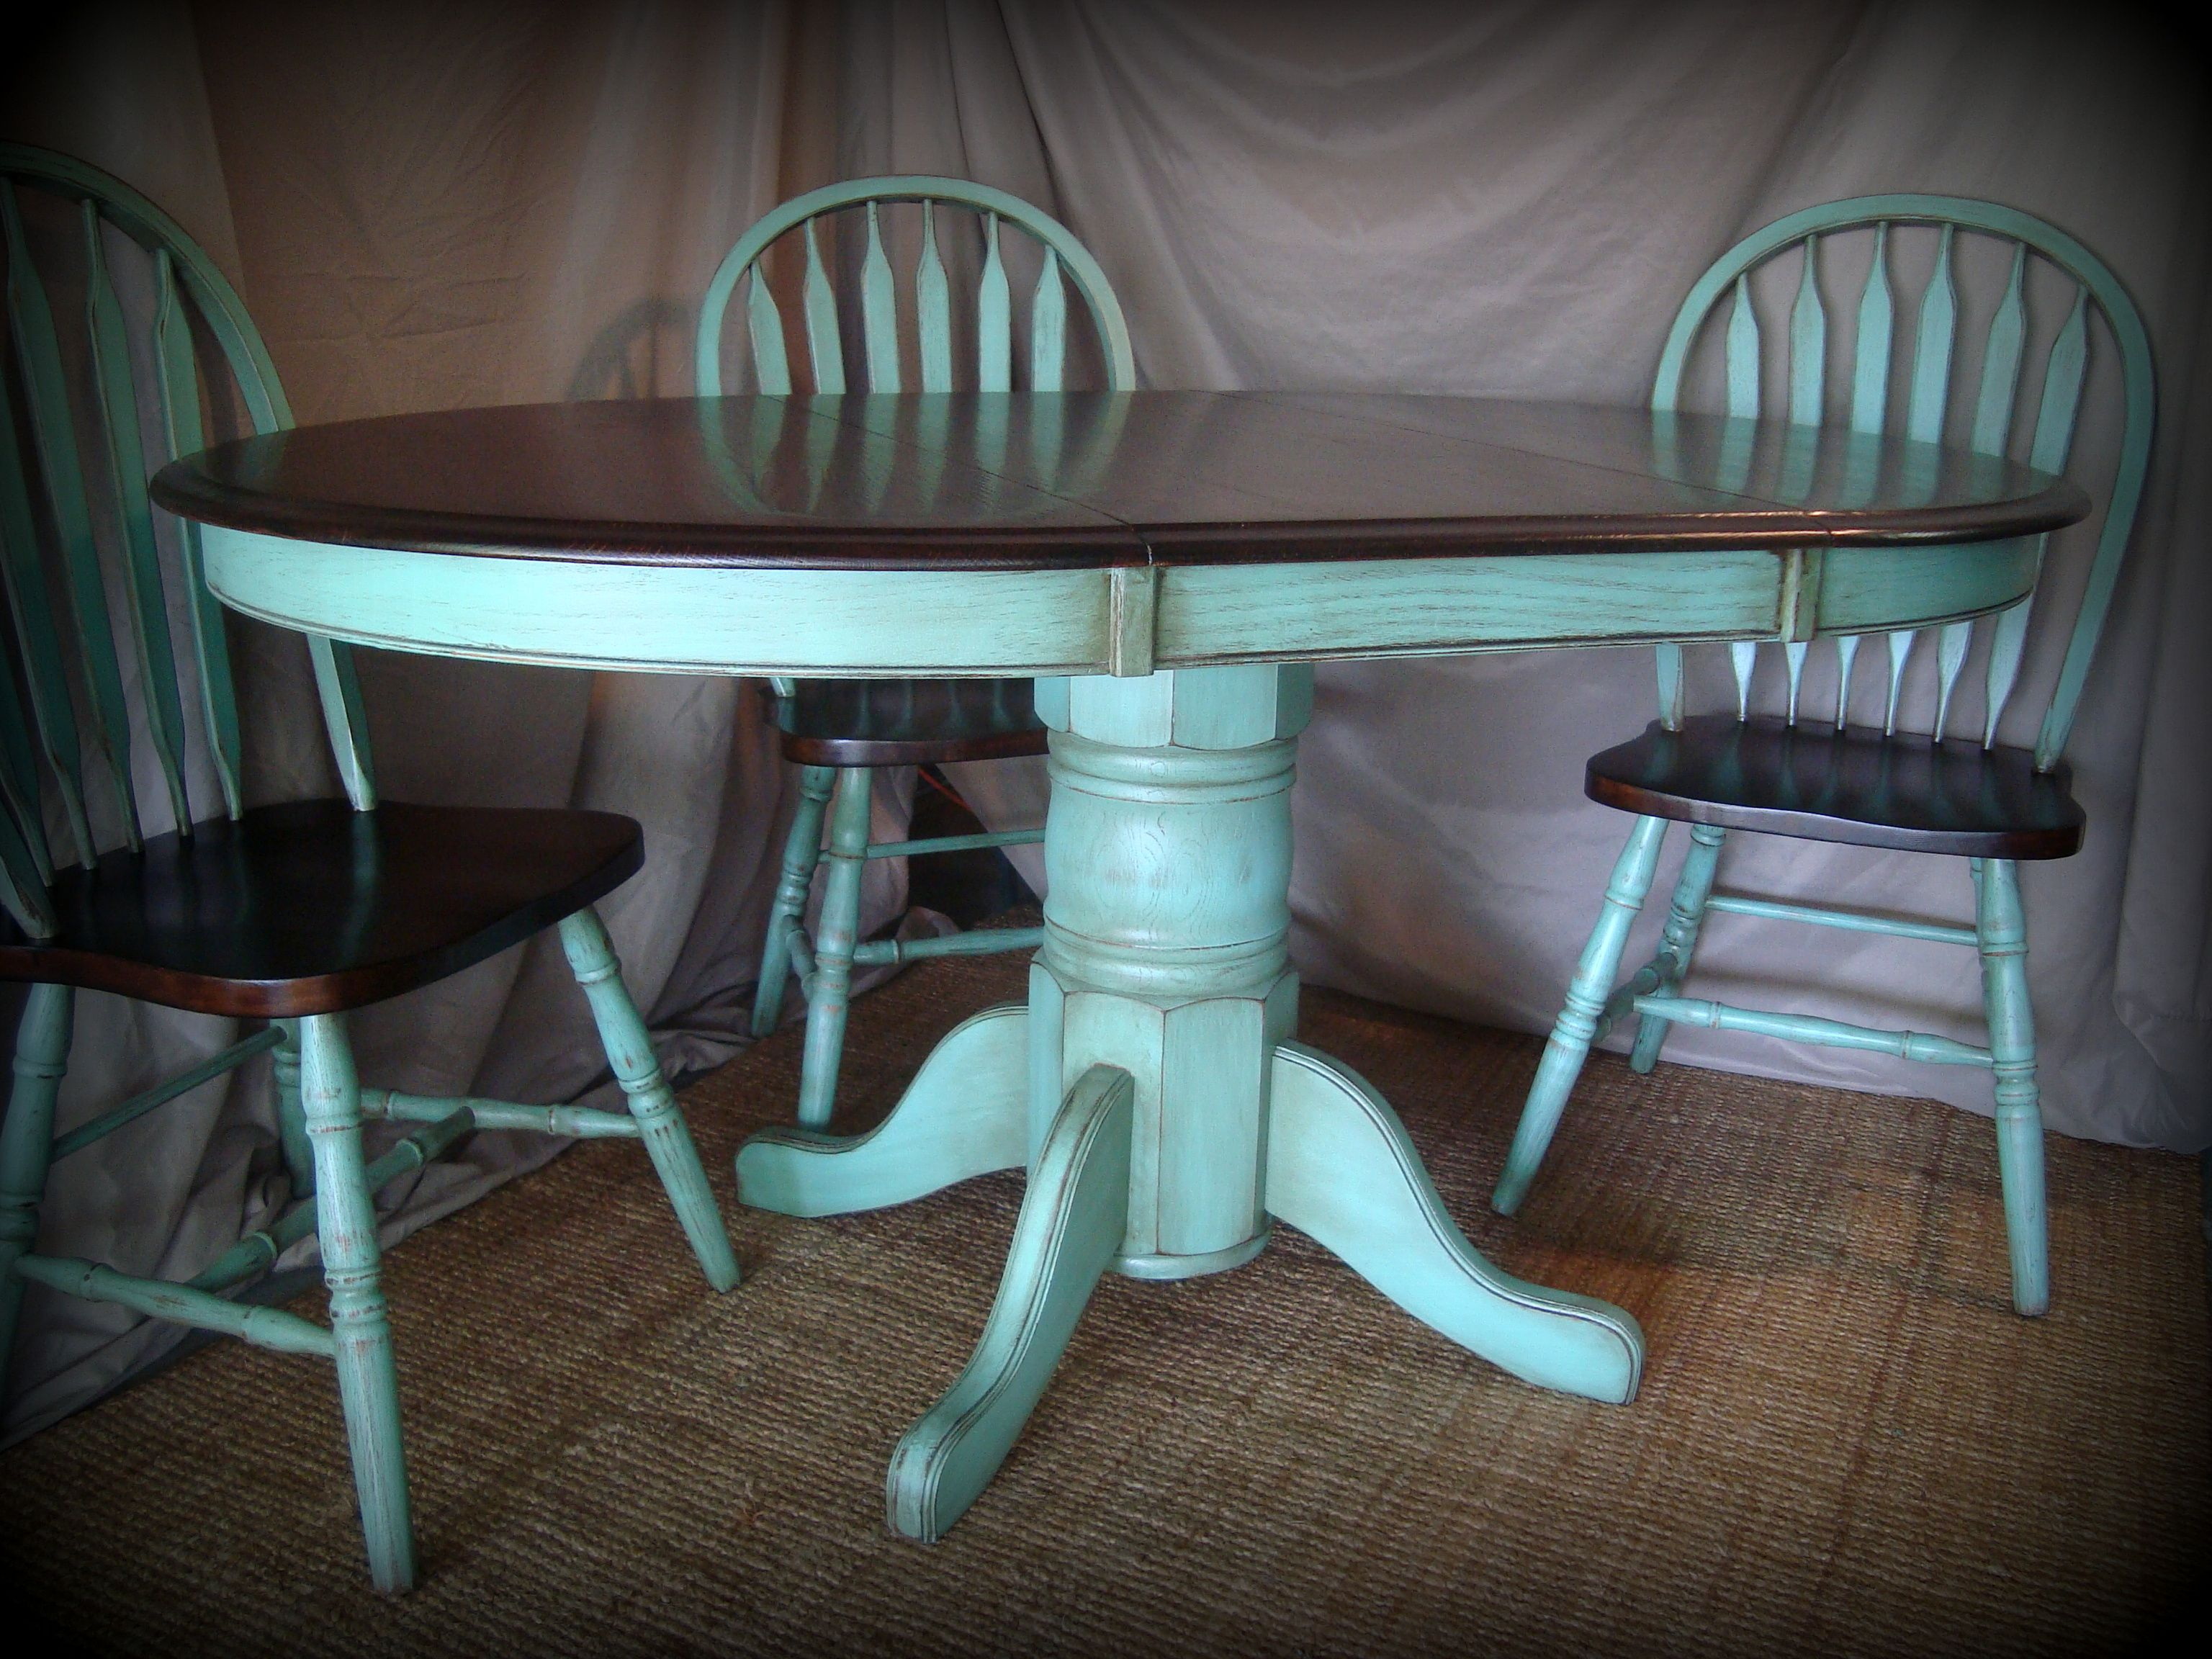 redo kitchen table kitchen table refinishing ideas pictures stained the table top and chairs with dark walnut